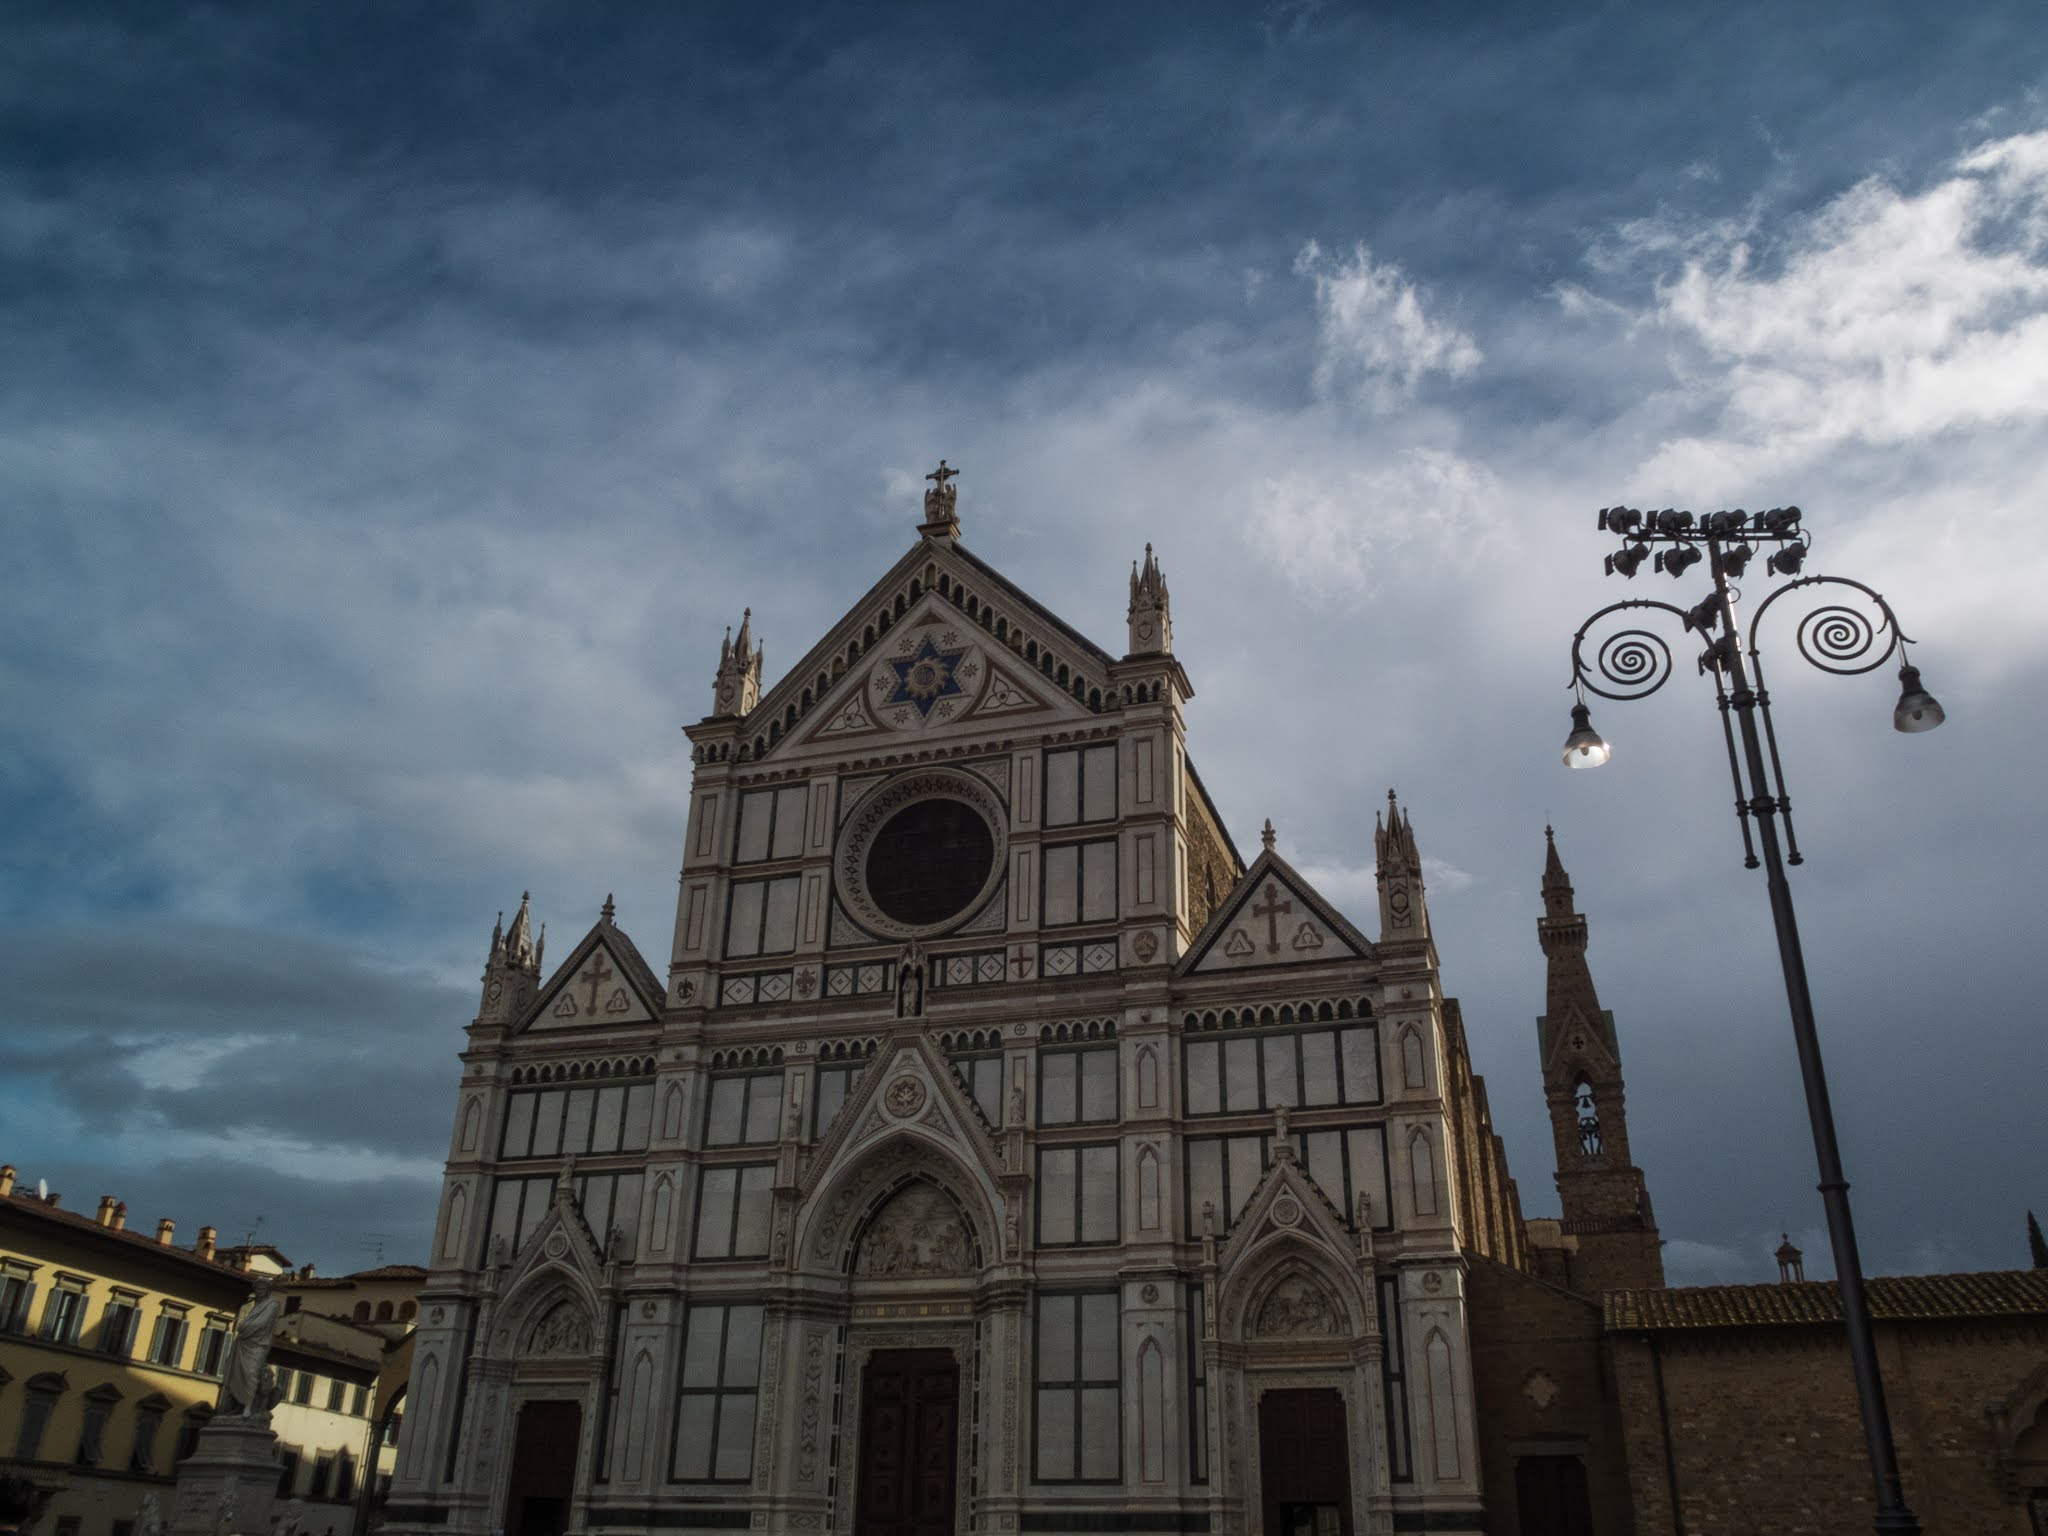 Basilica of Santa Croce and street lights in the piazza in Florence.